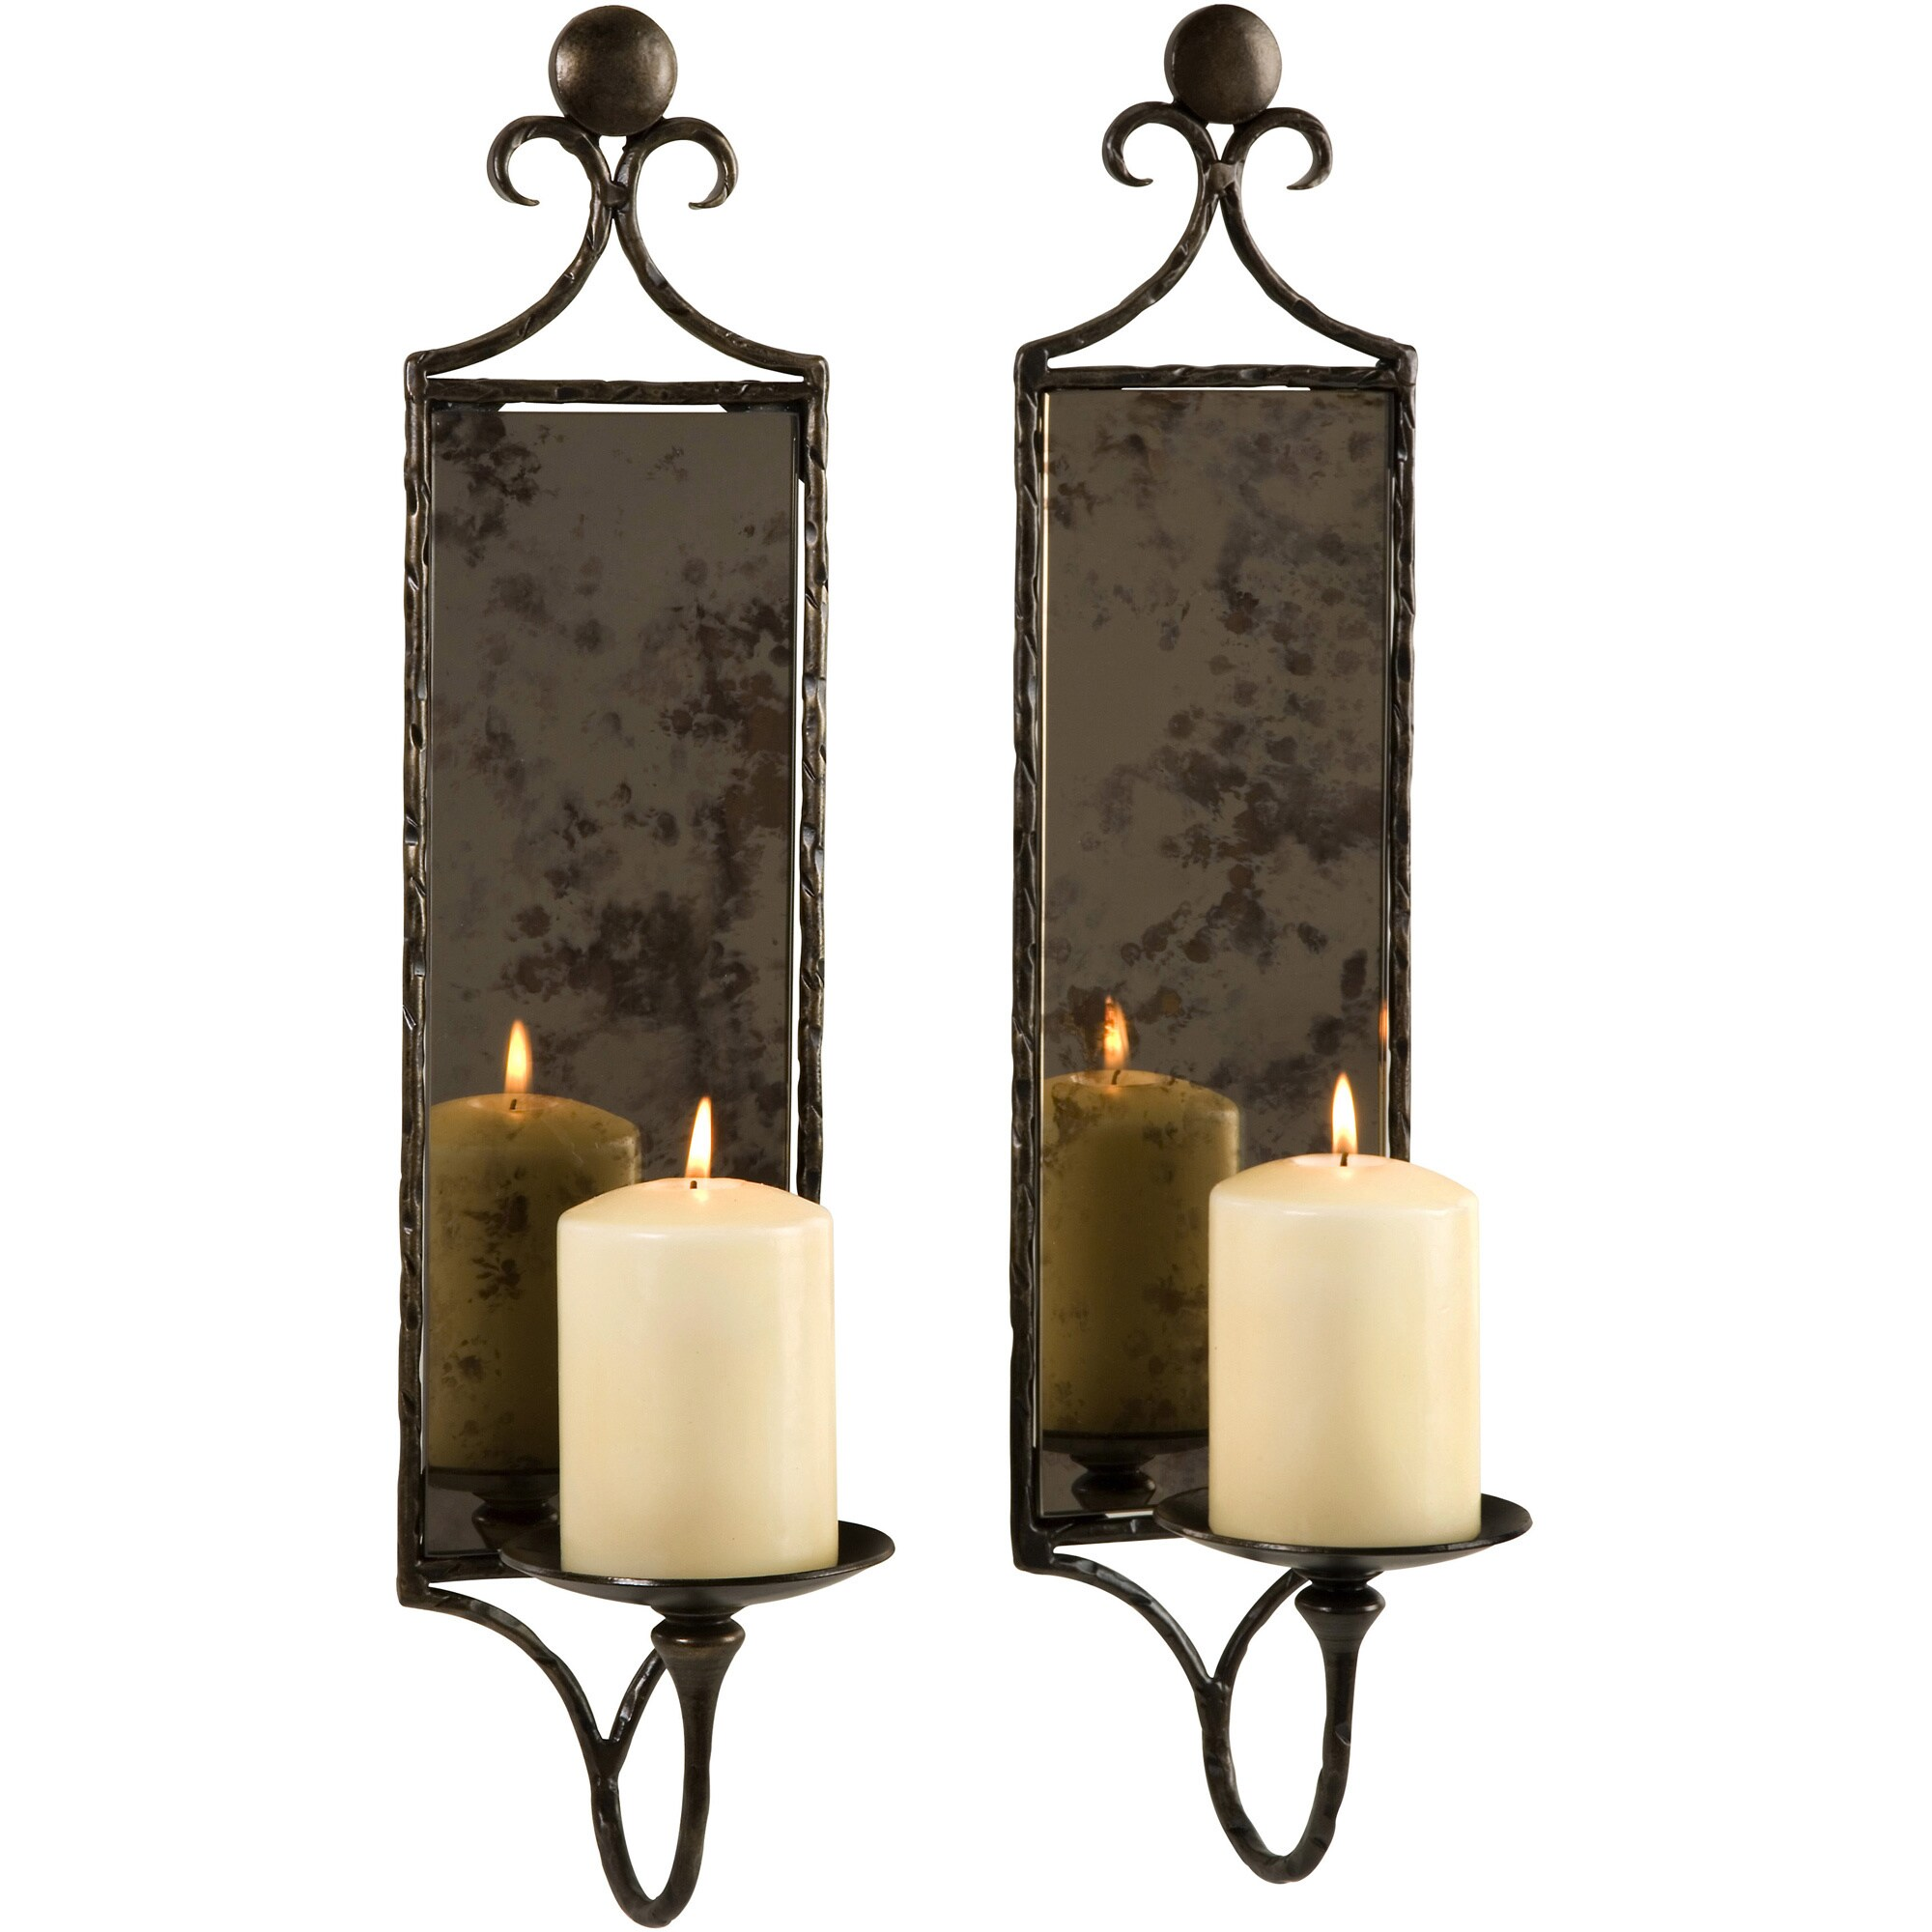 Hammered Mirror Wall Sconce Candle Set Of 2